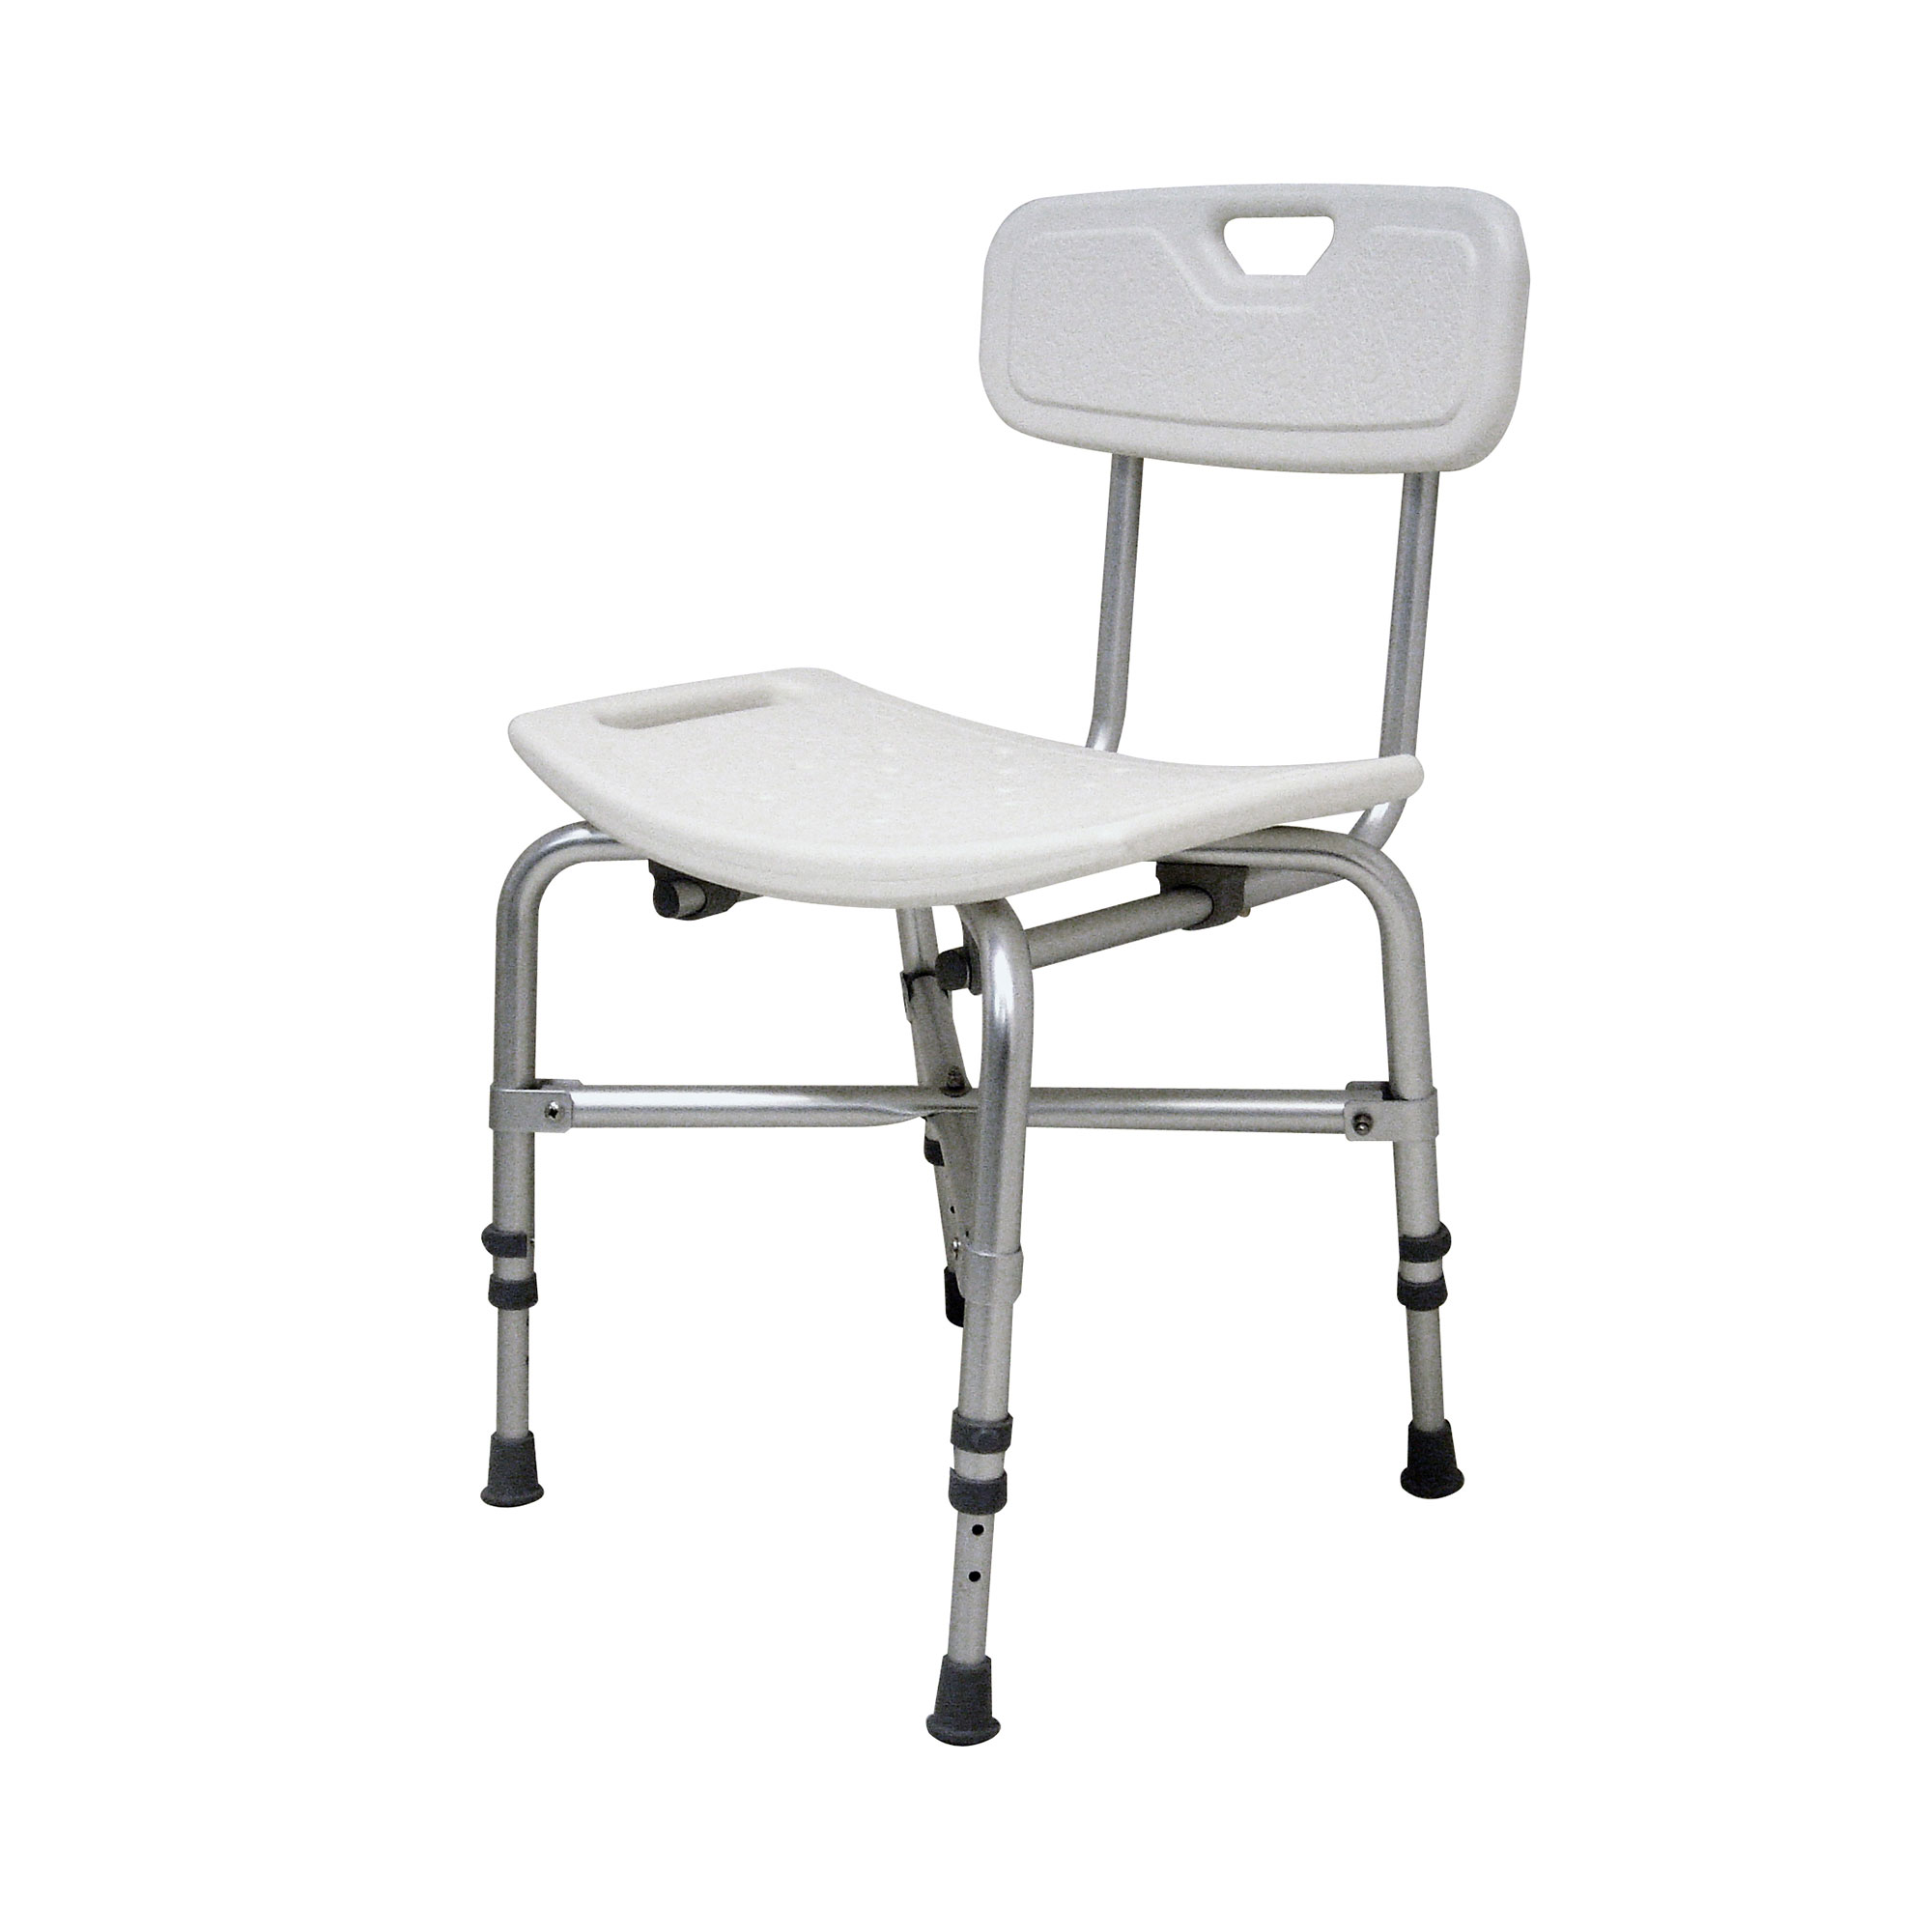 4300 : Heavy Duty Shower Stool - Roma Medical